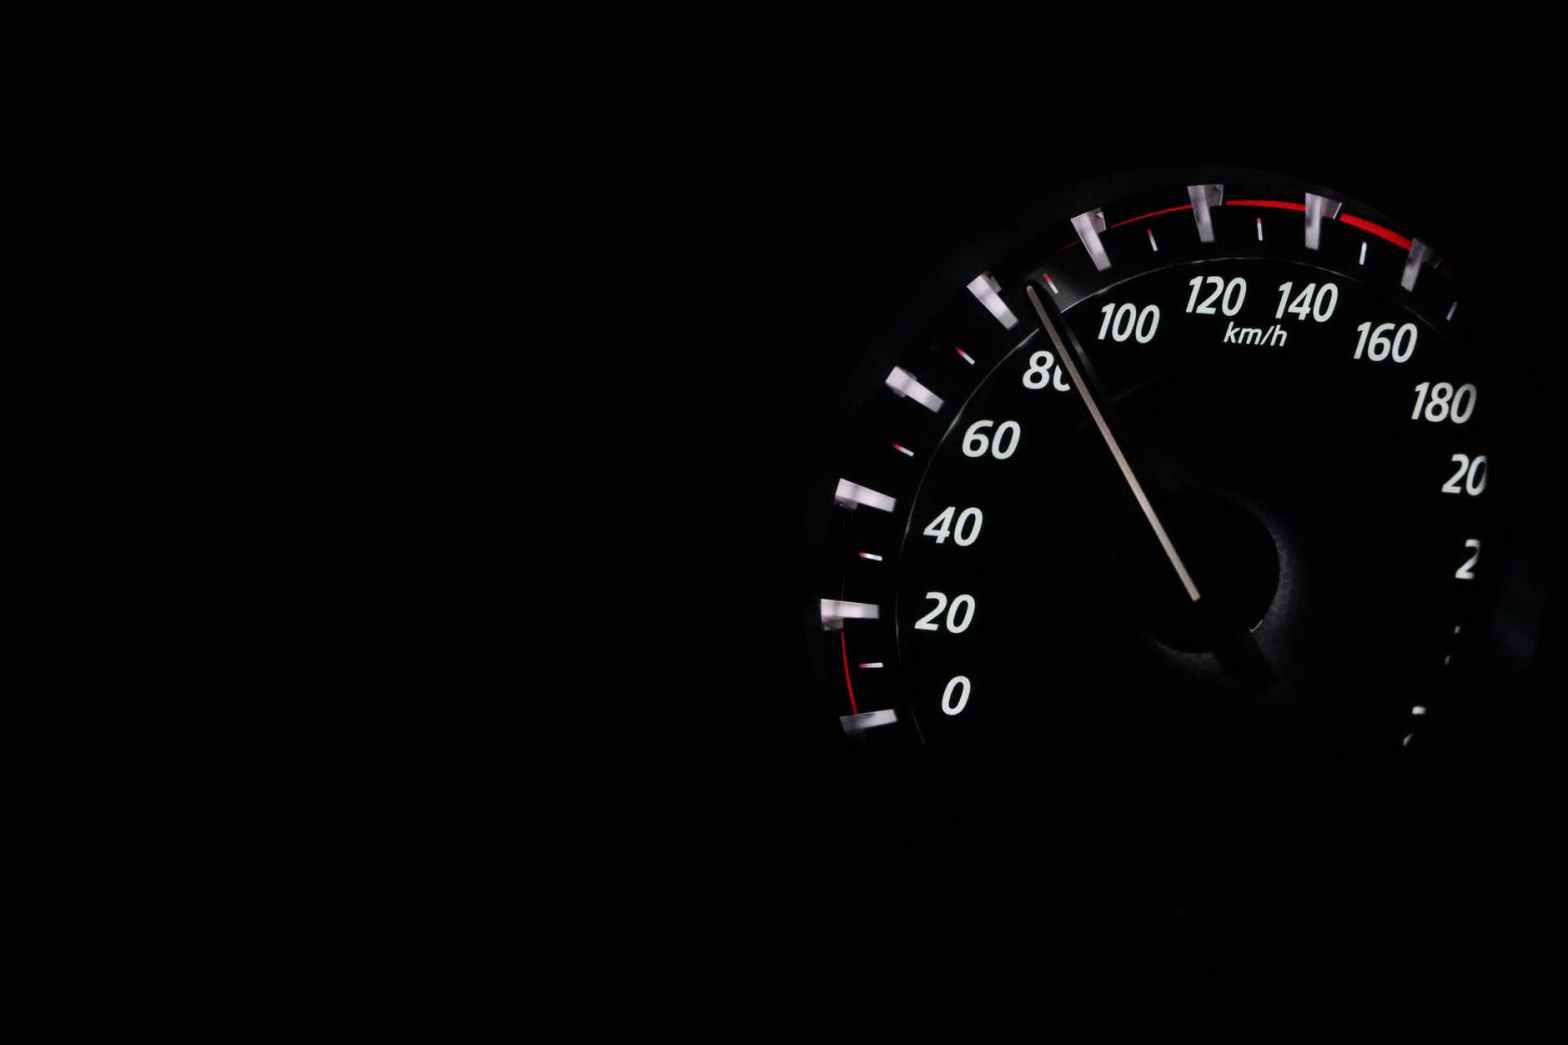 Speedometer showing 80 km/h, Photo by Pixabay on Pexels.com